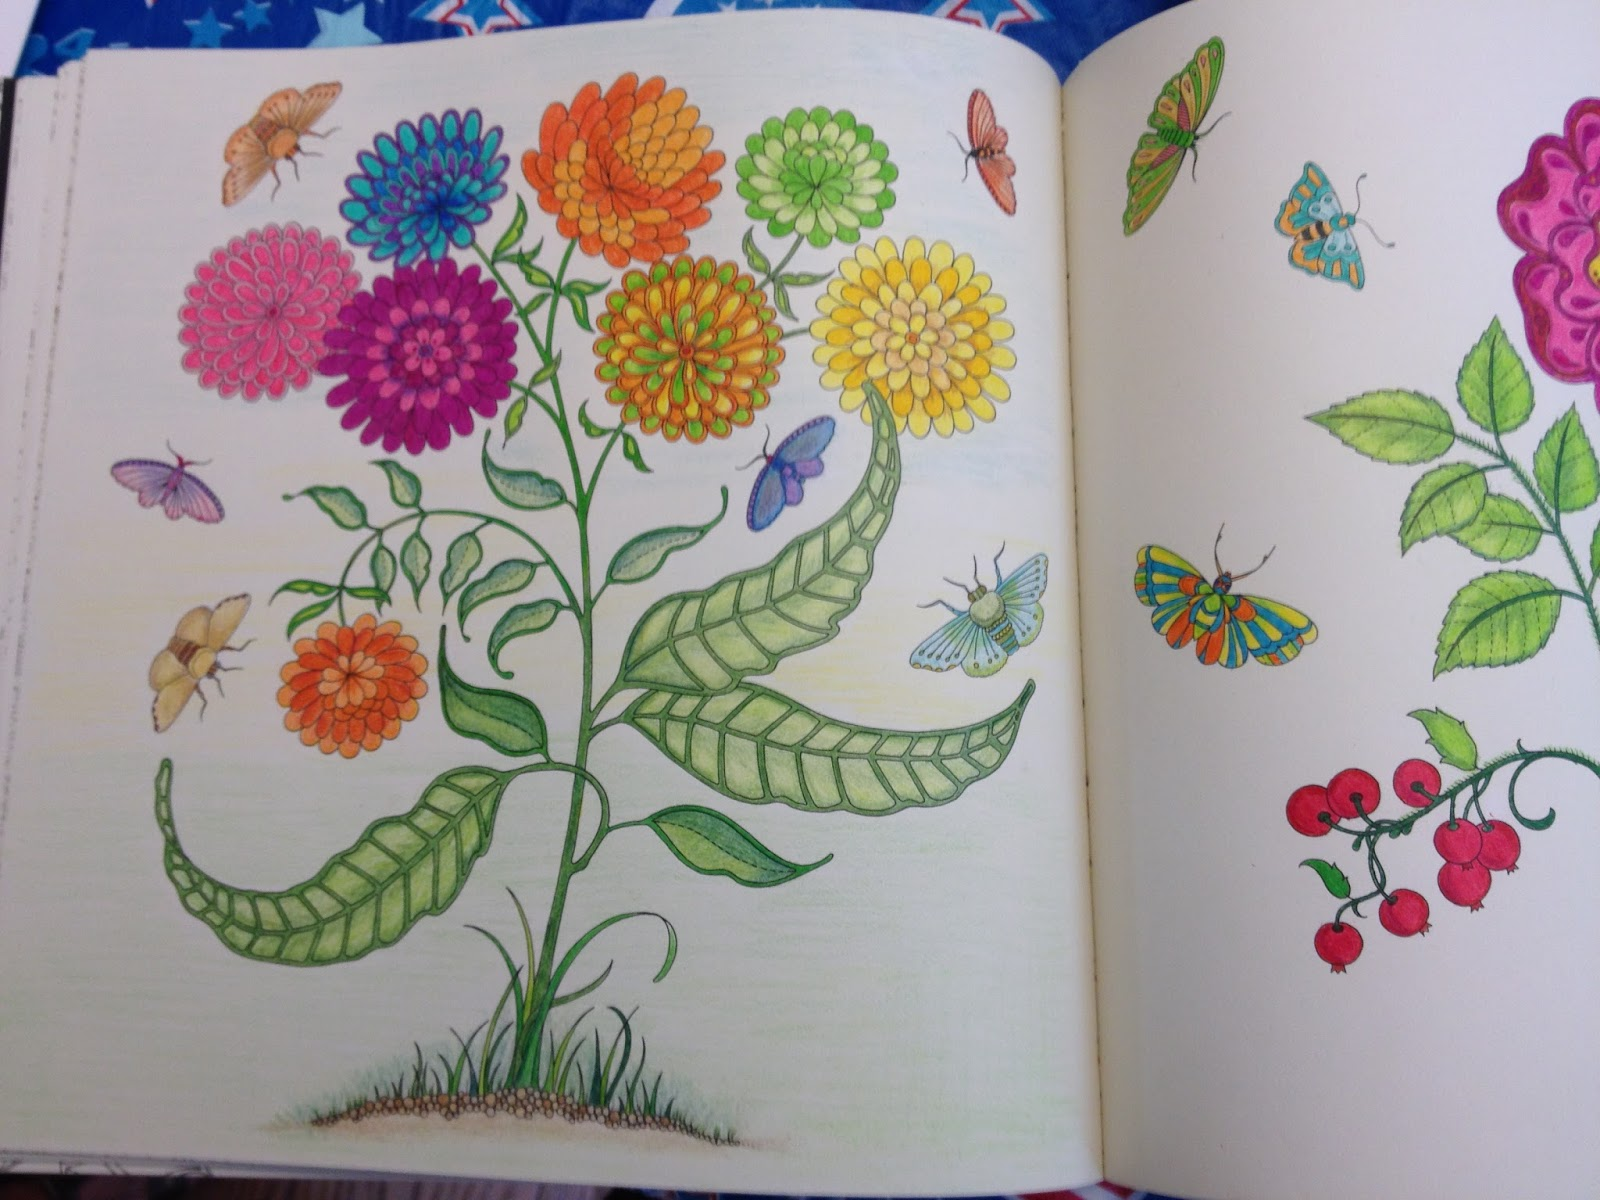 The Jersey Momma: The Best Adult Coloring Books